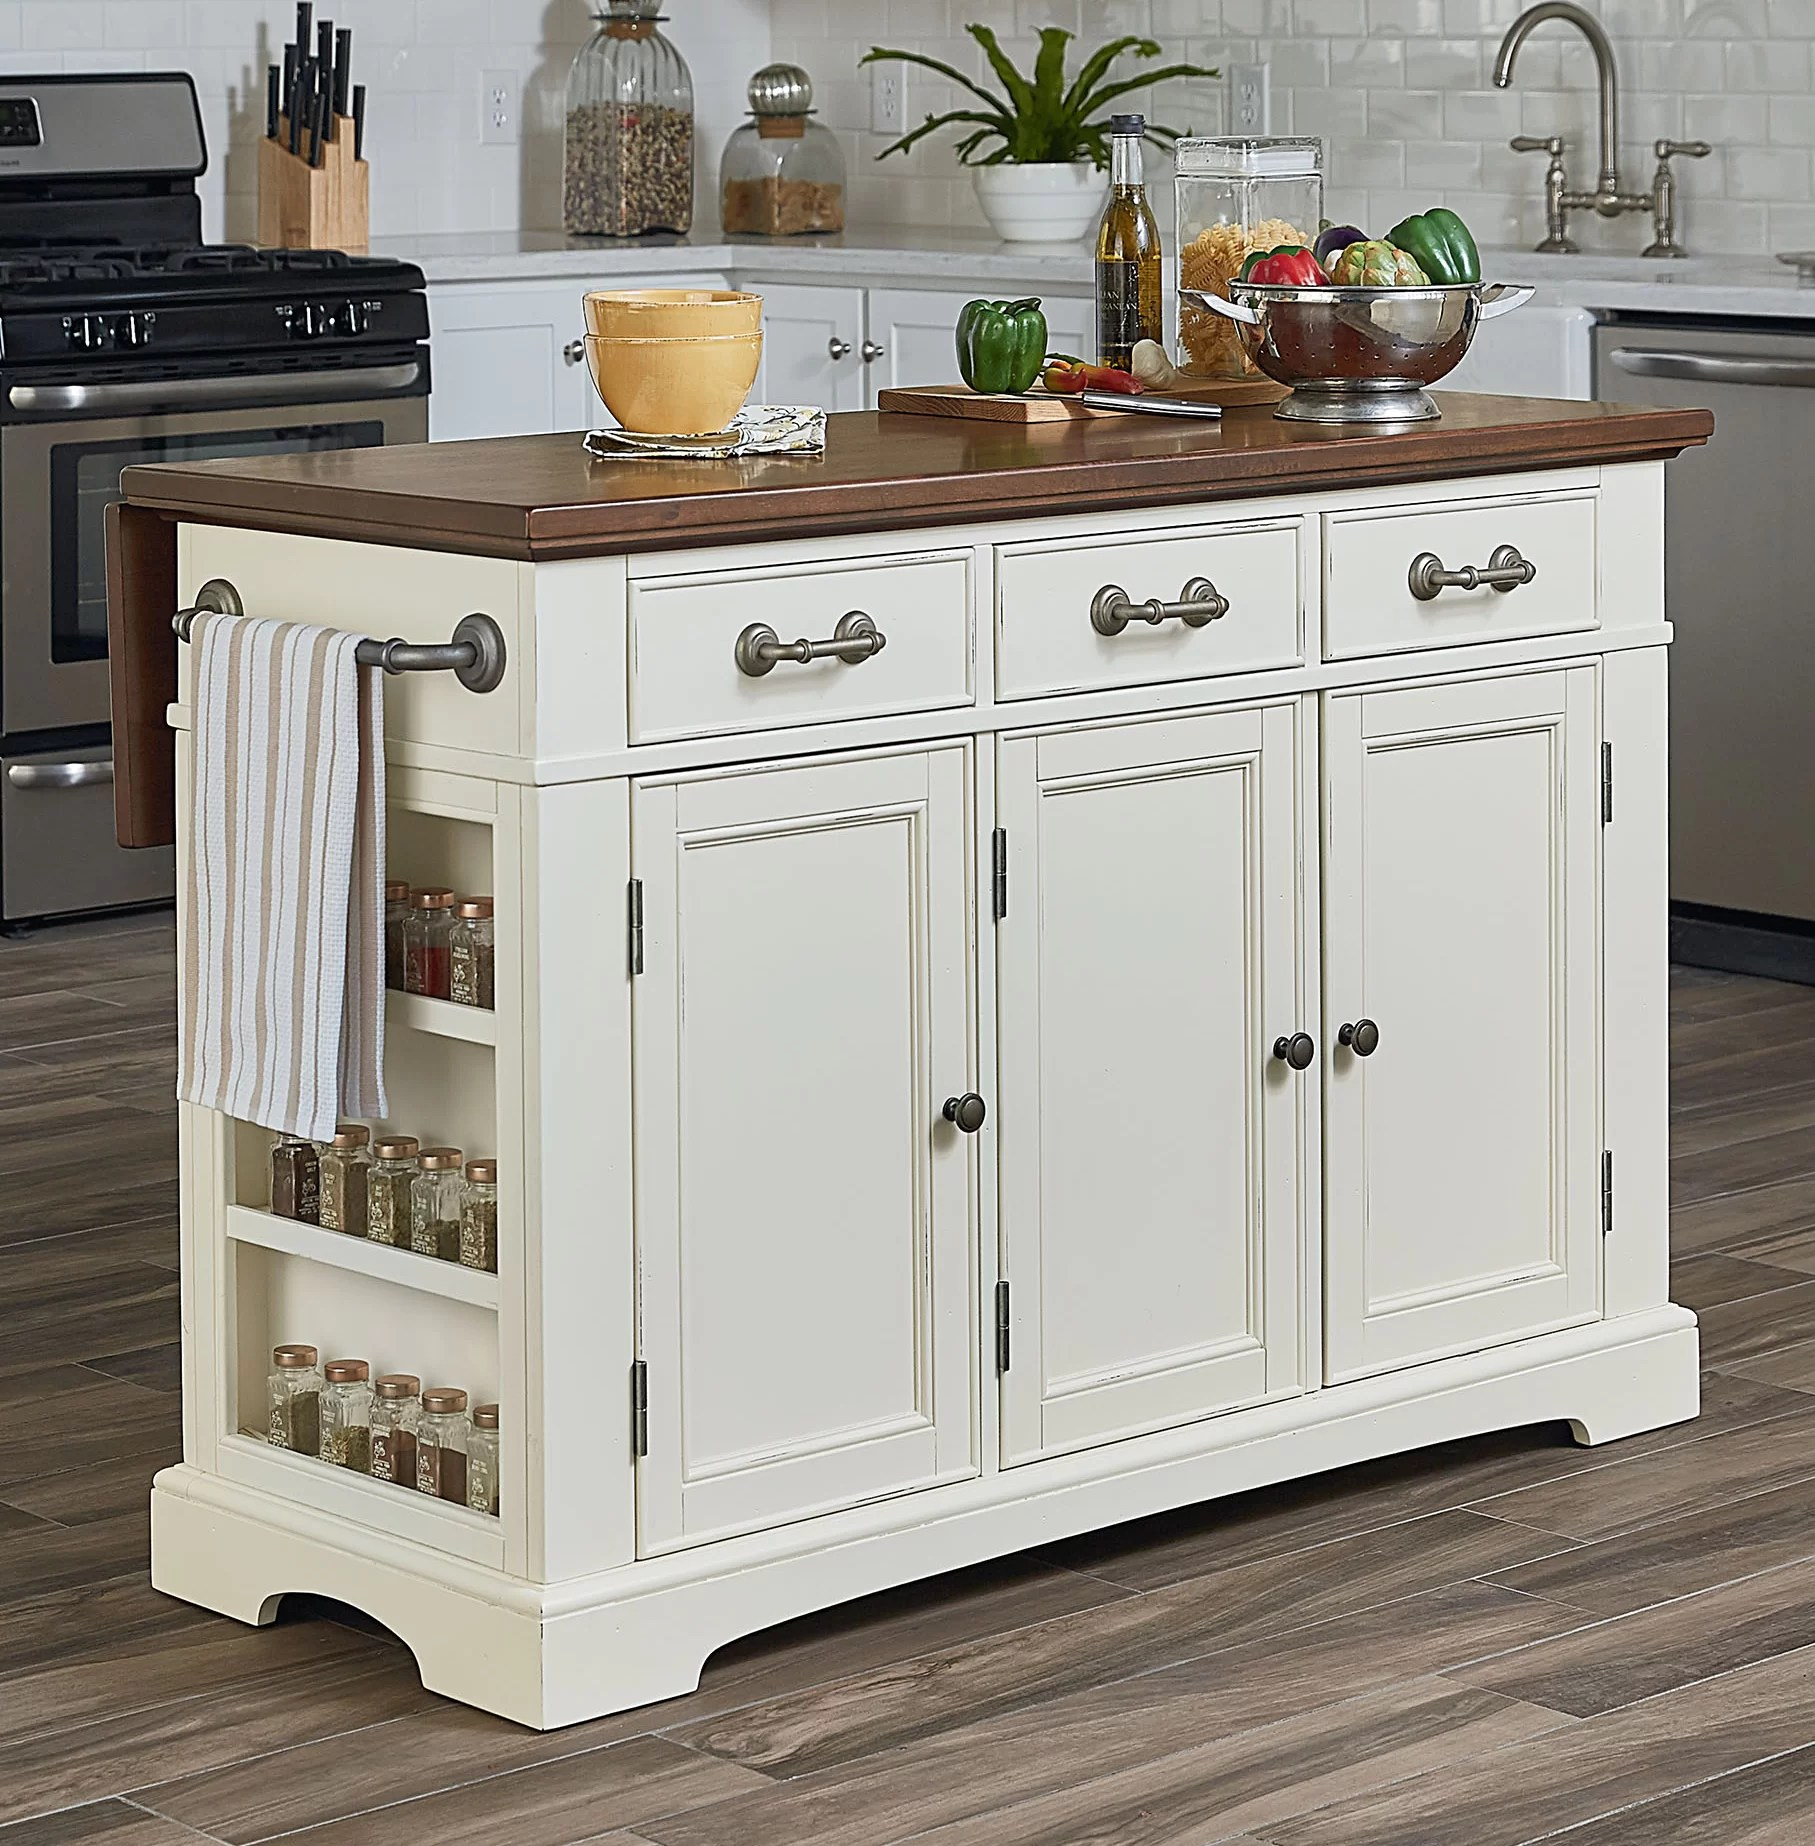 large kitchen island bargain outlet cabinets darby home co maile reviews wayfair